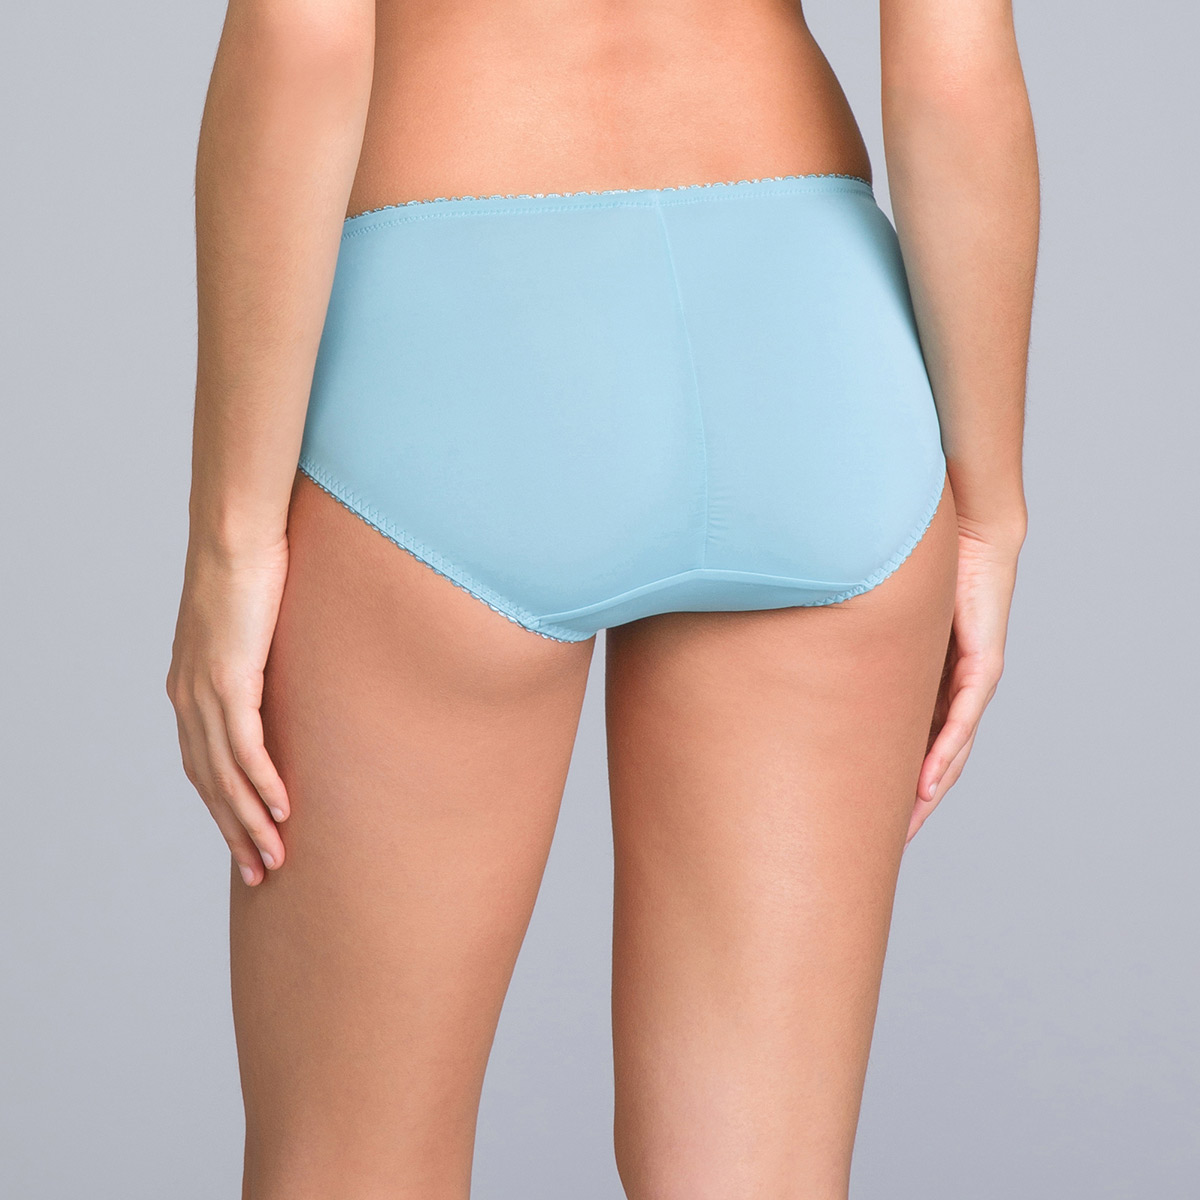 Midi Knickers in Wave Blue Lace - Classic Lace Support - PLAYTEX